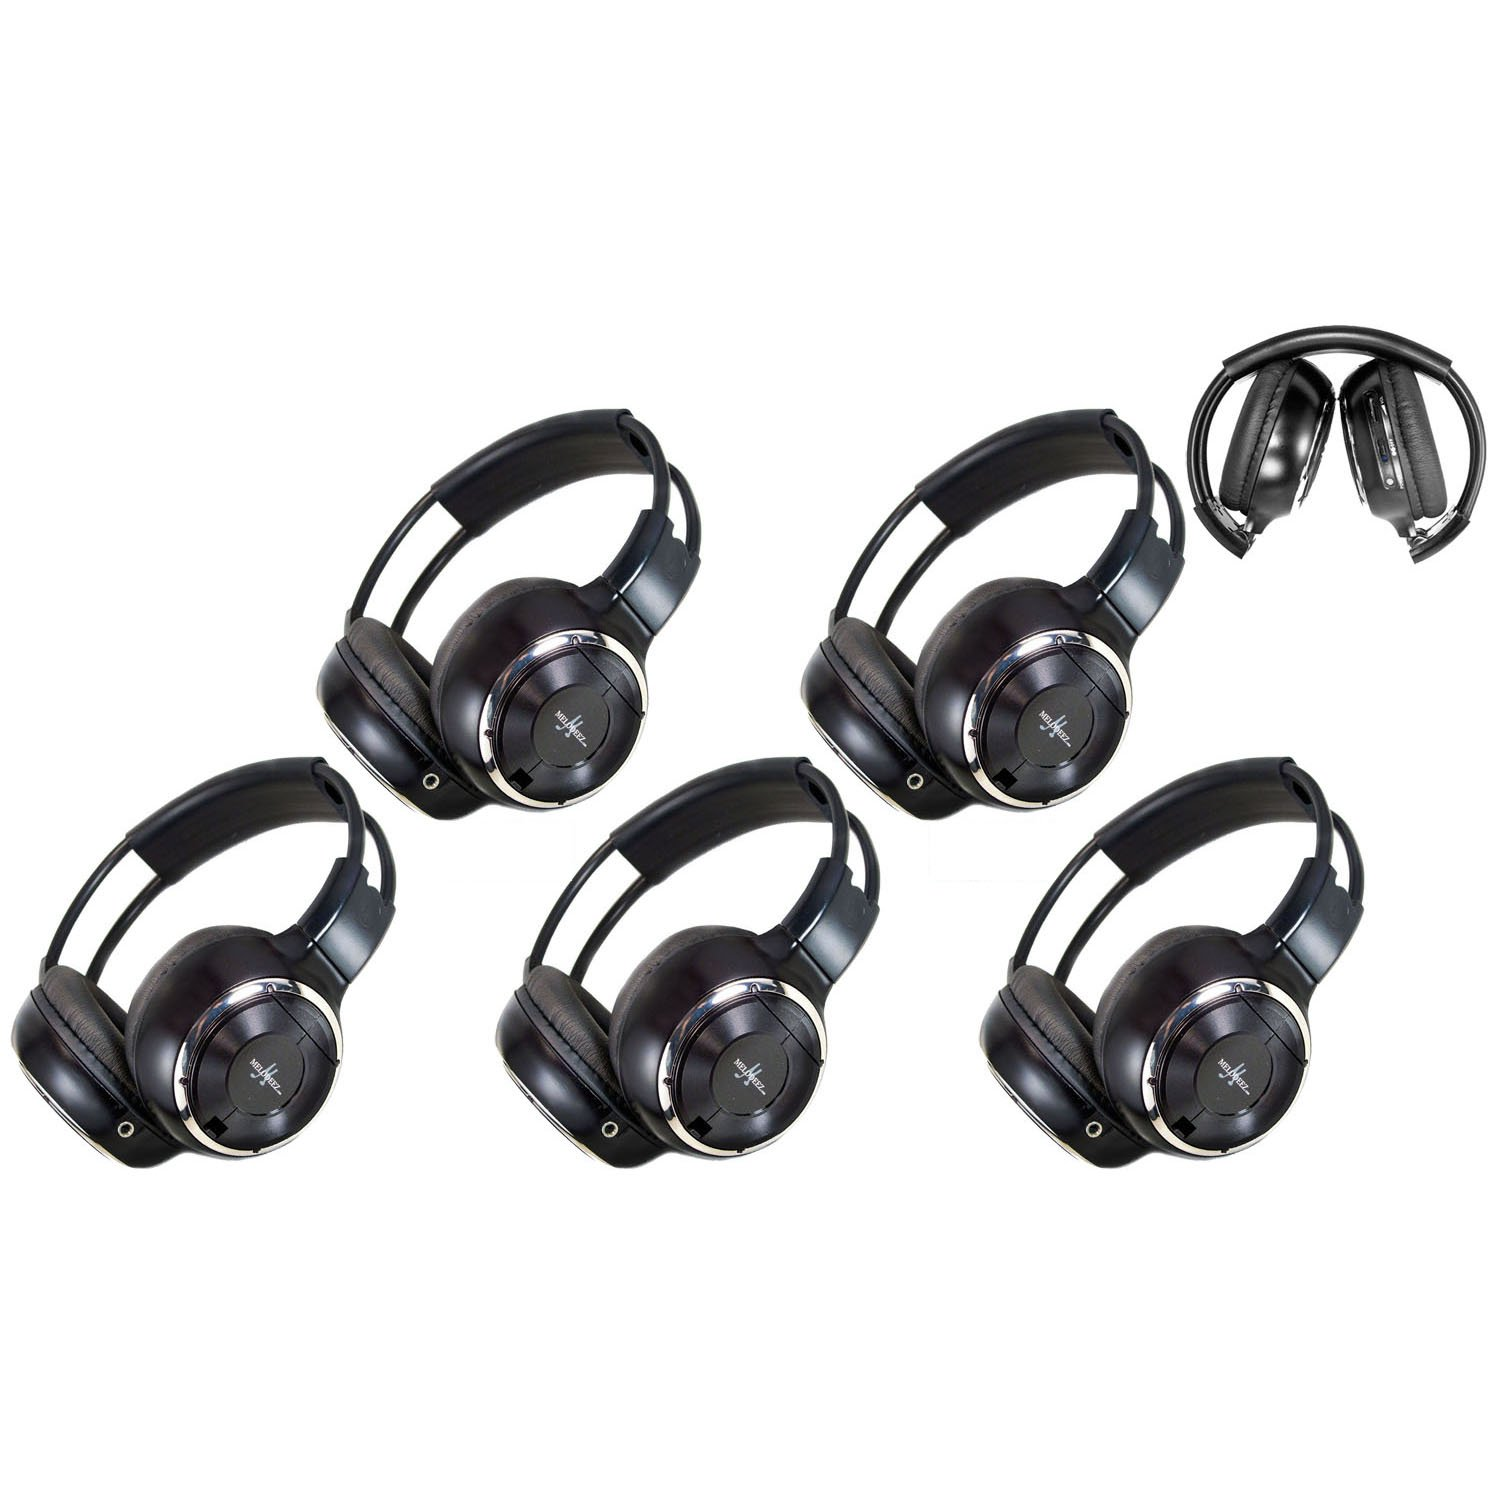 5 Pack of Two Channel Fold Adjustable Universal Rear Entertainment System Infrared Headphones 5 Additional 48'' 3.5mm Auxiliary Cords Wireless IR DVD Player Head Phones Car TV Video Audio Listening